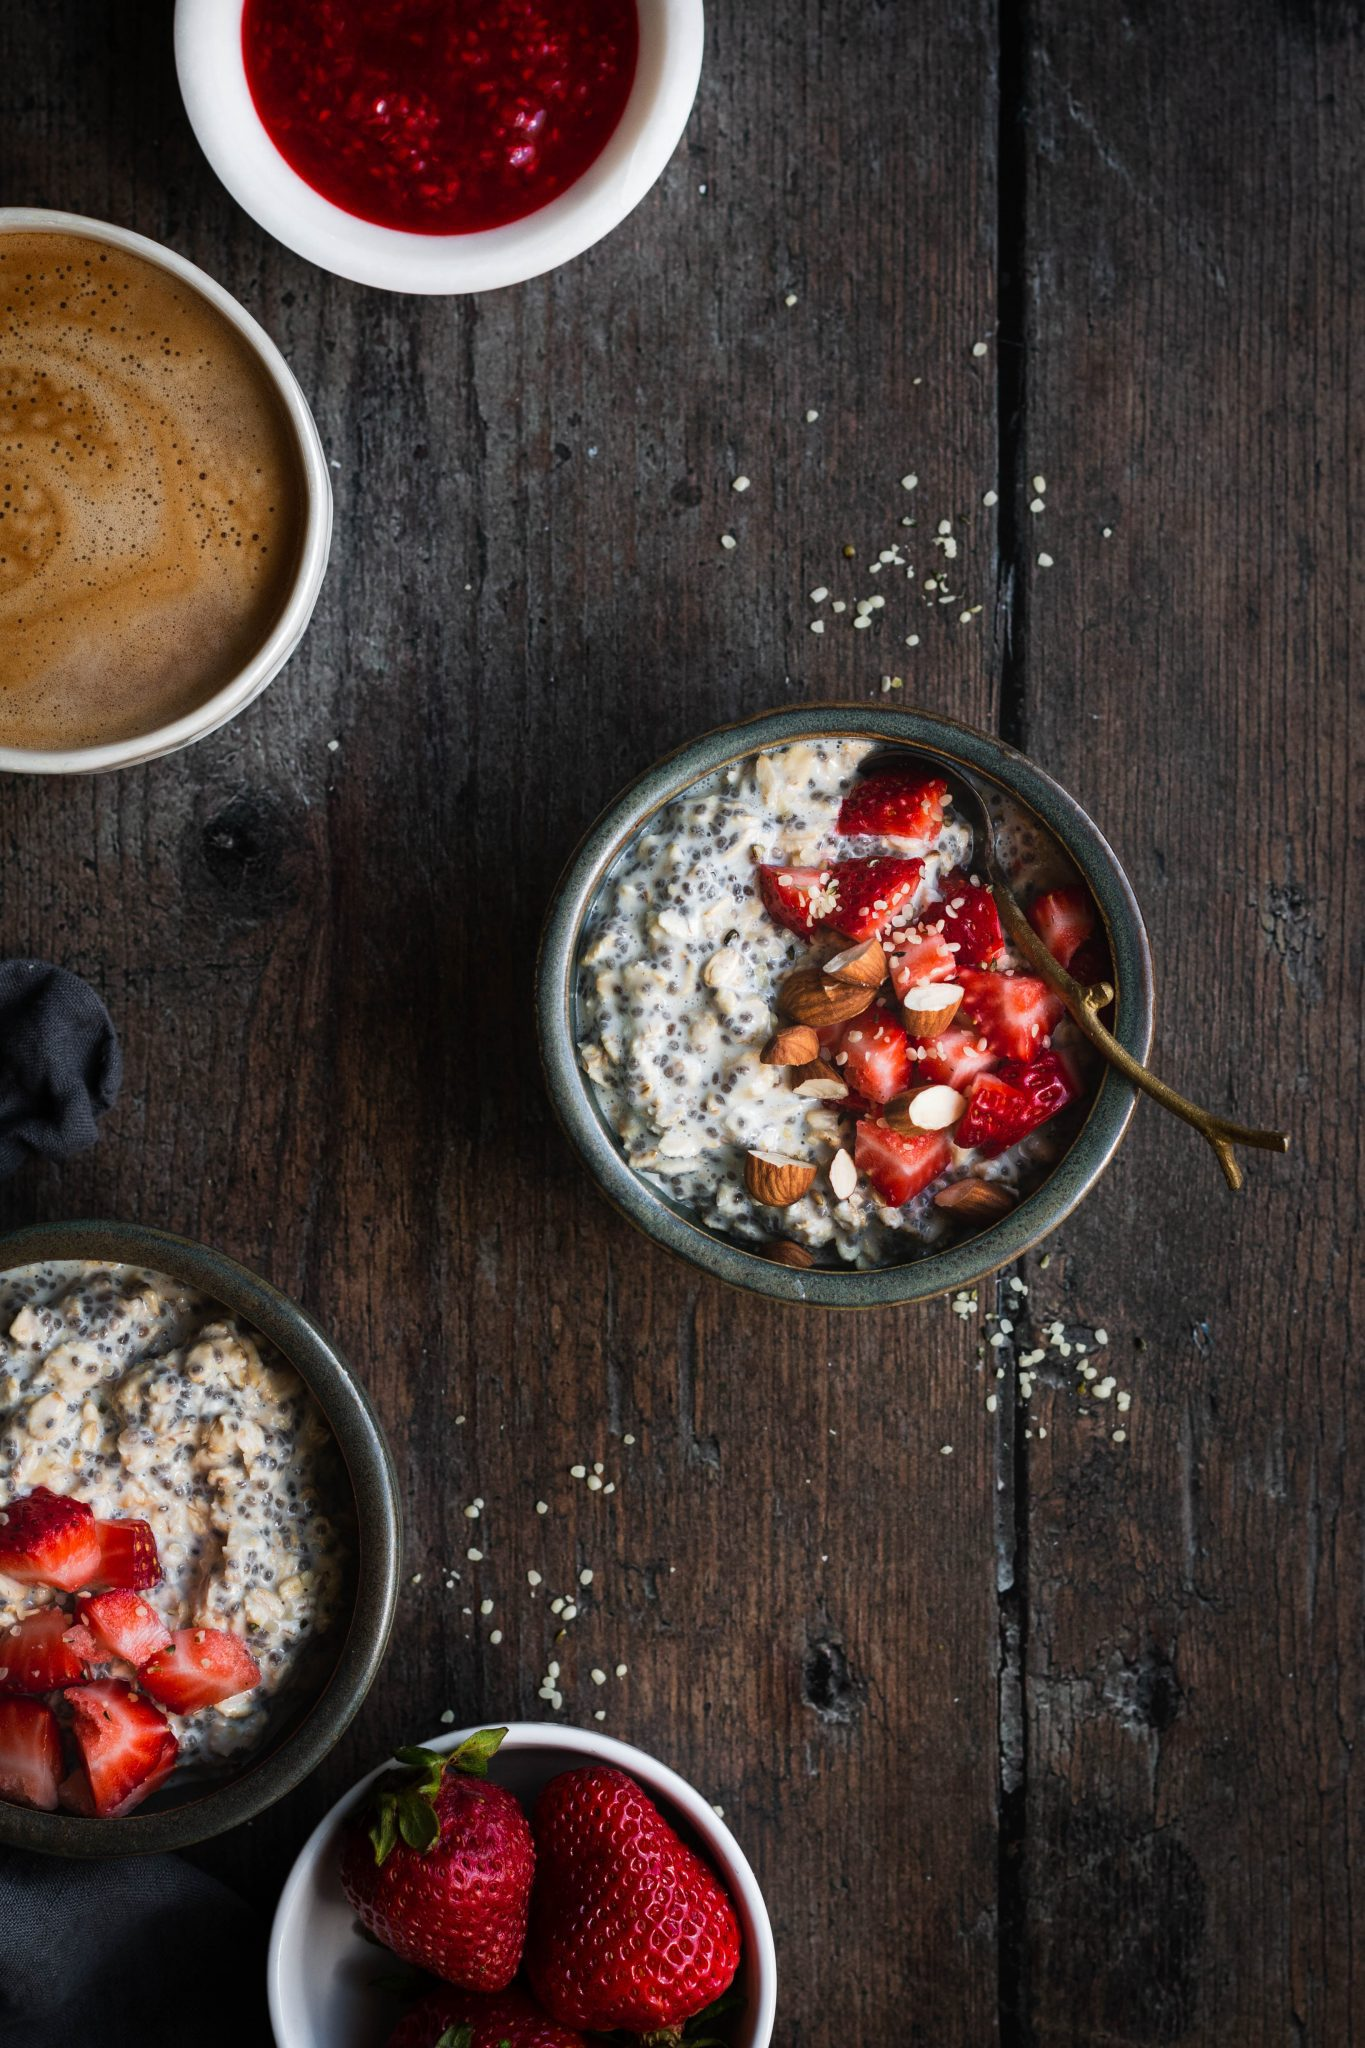 overnight oats in a bowl with berries